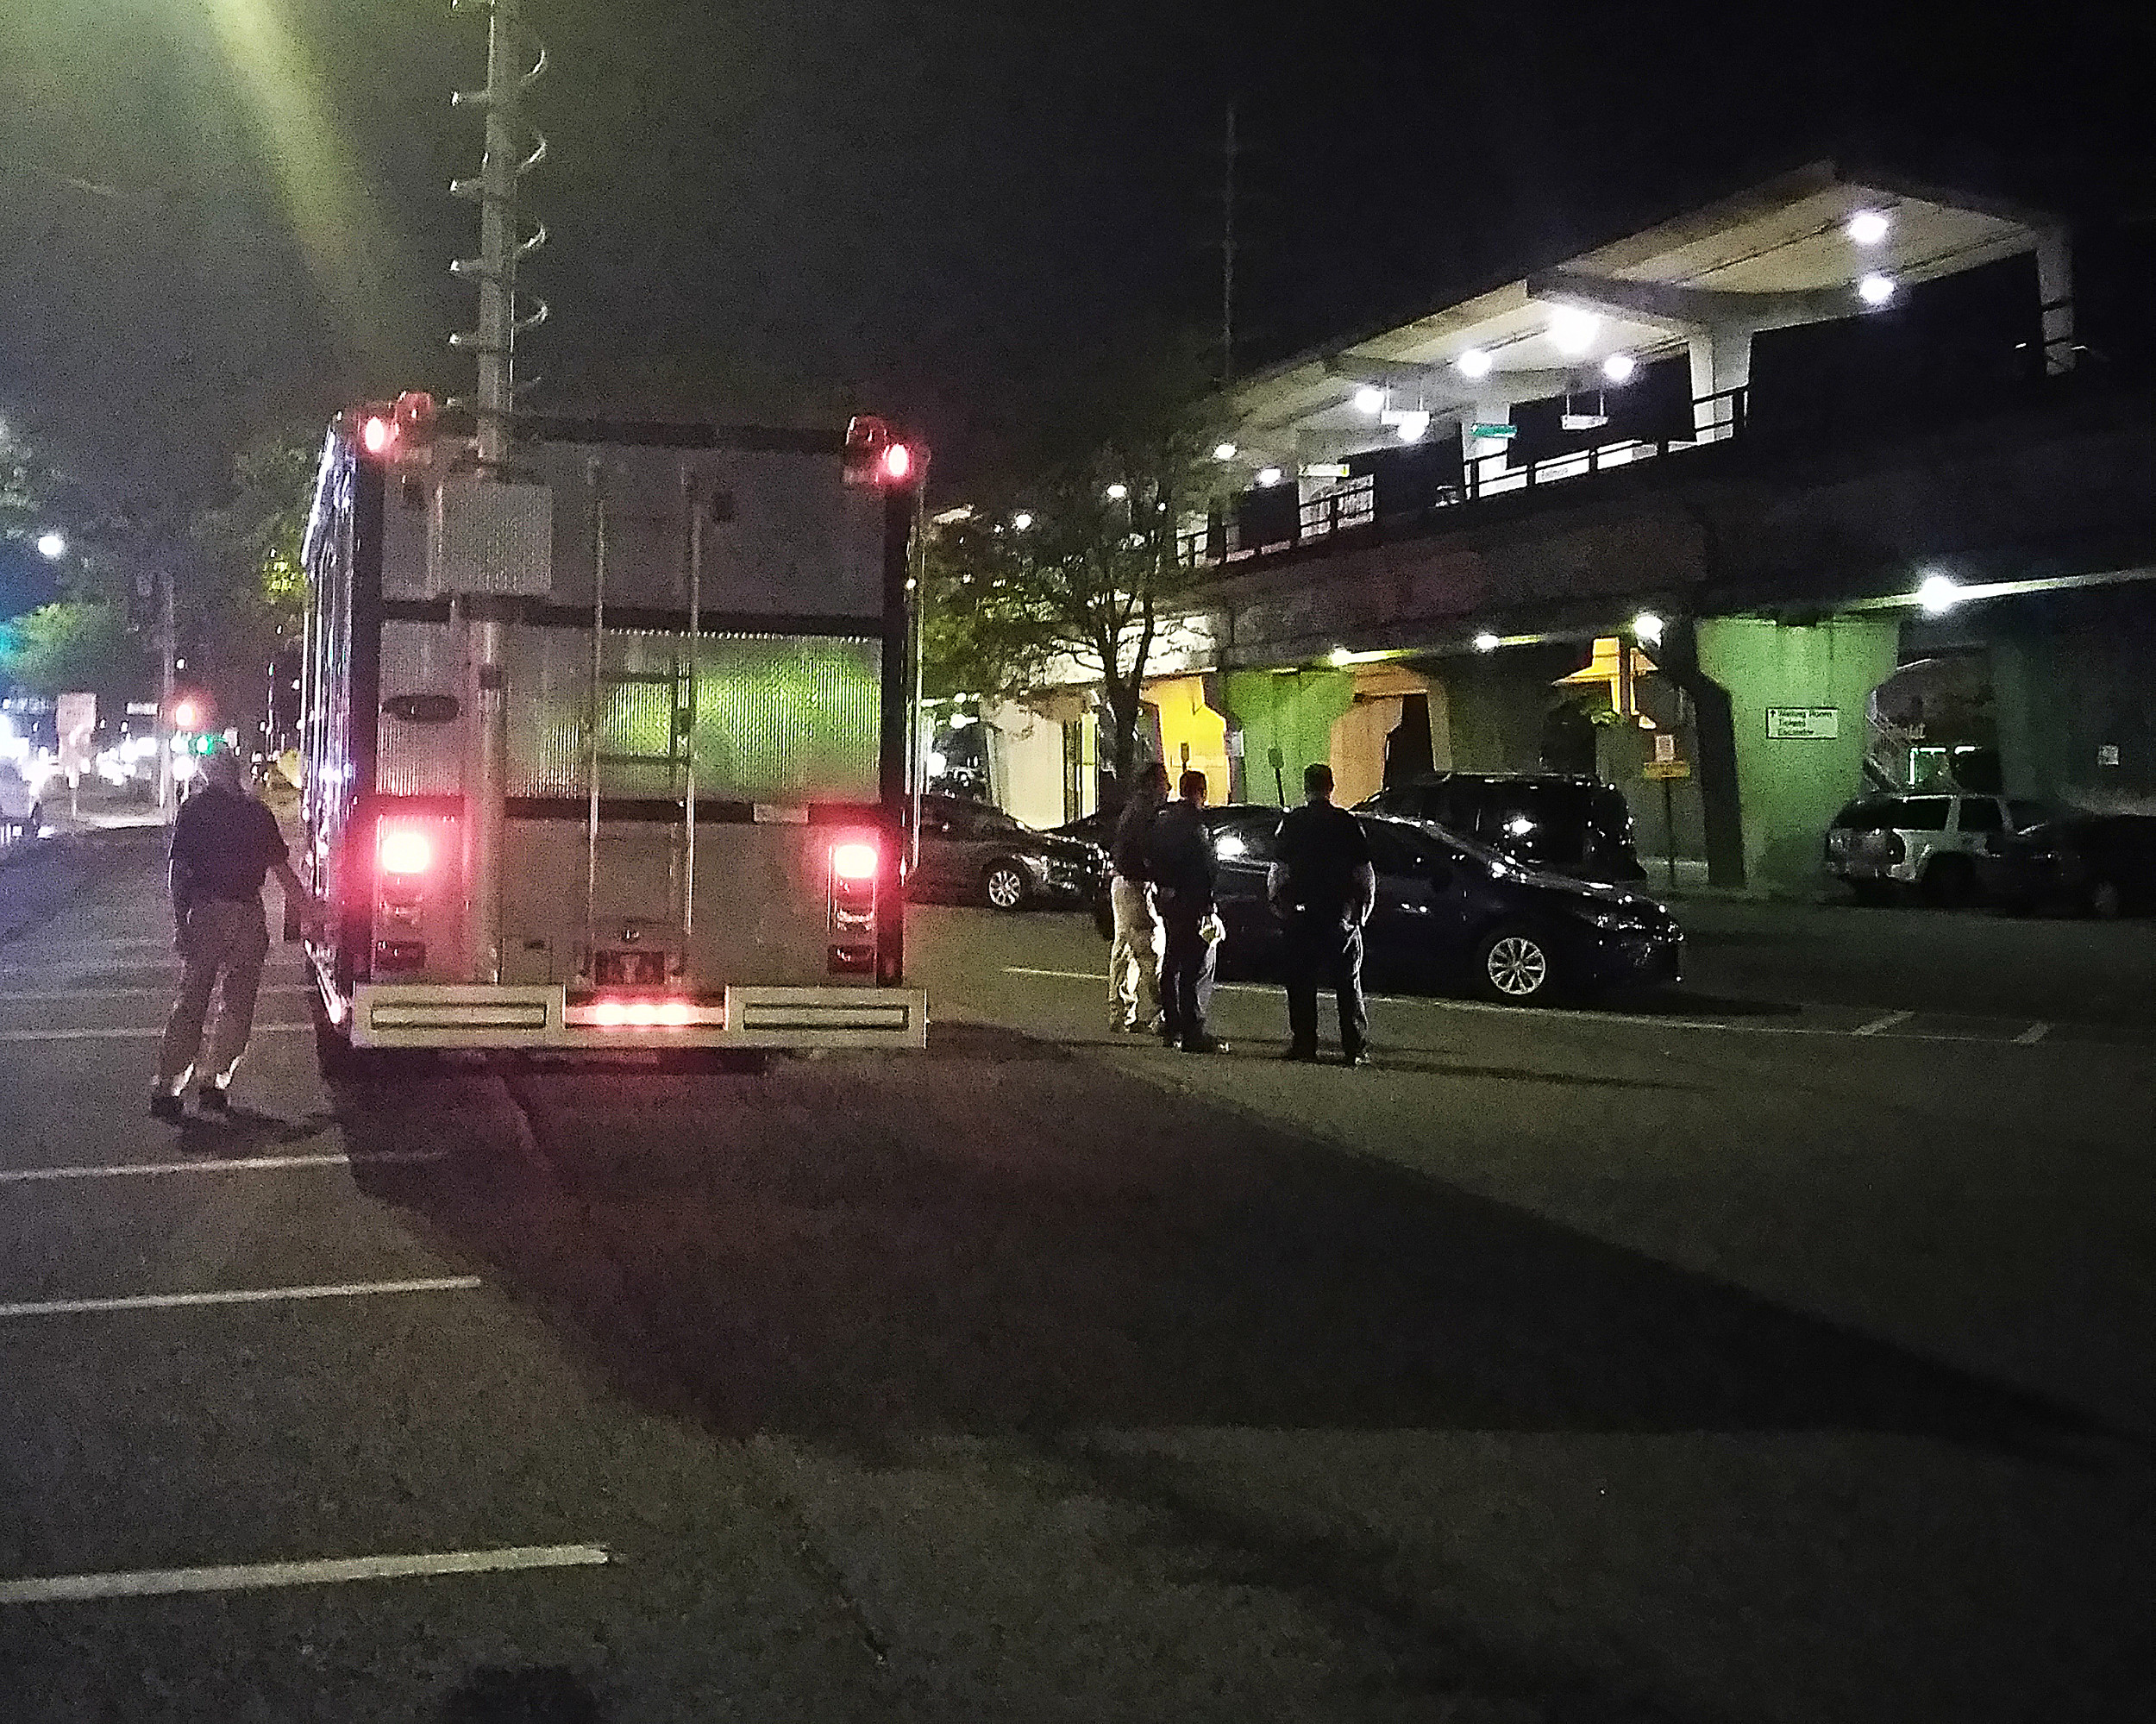 The bomb squad was called to the Long Island Railroad station in Bellmore on Tuesday night after a report of a suspicious package.